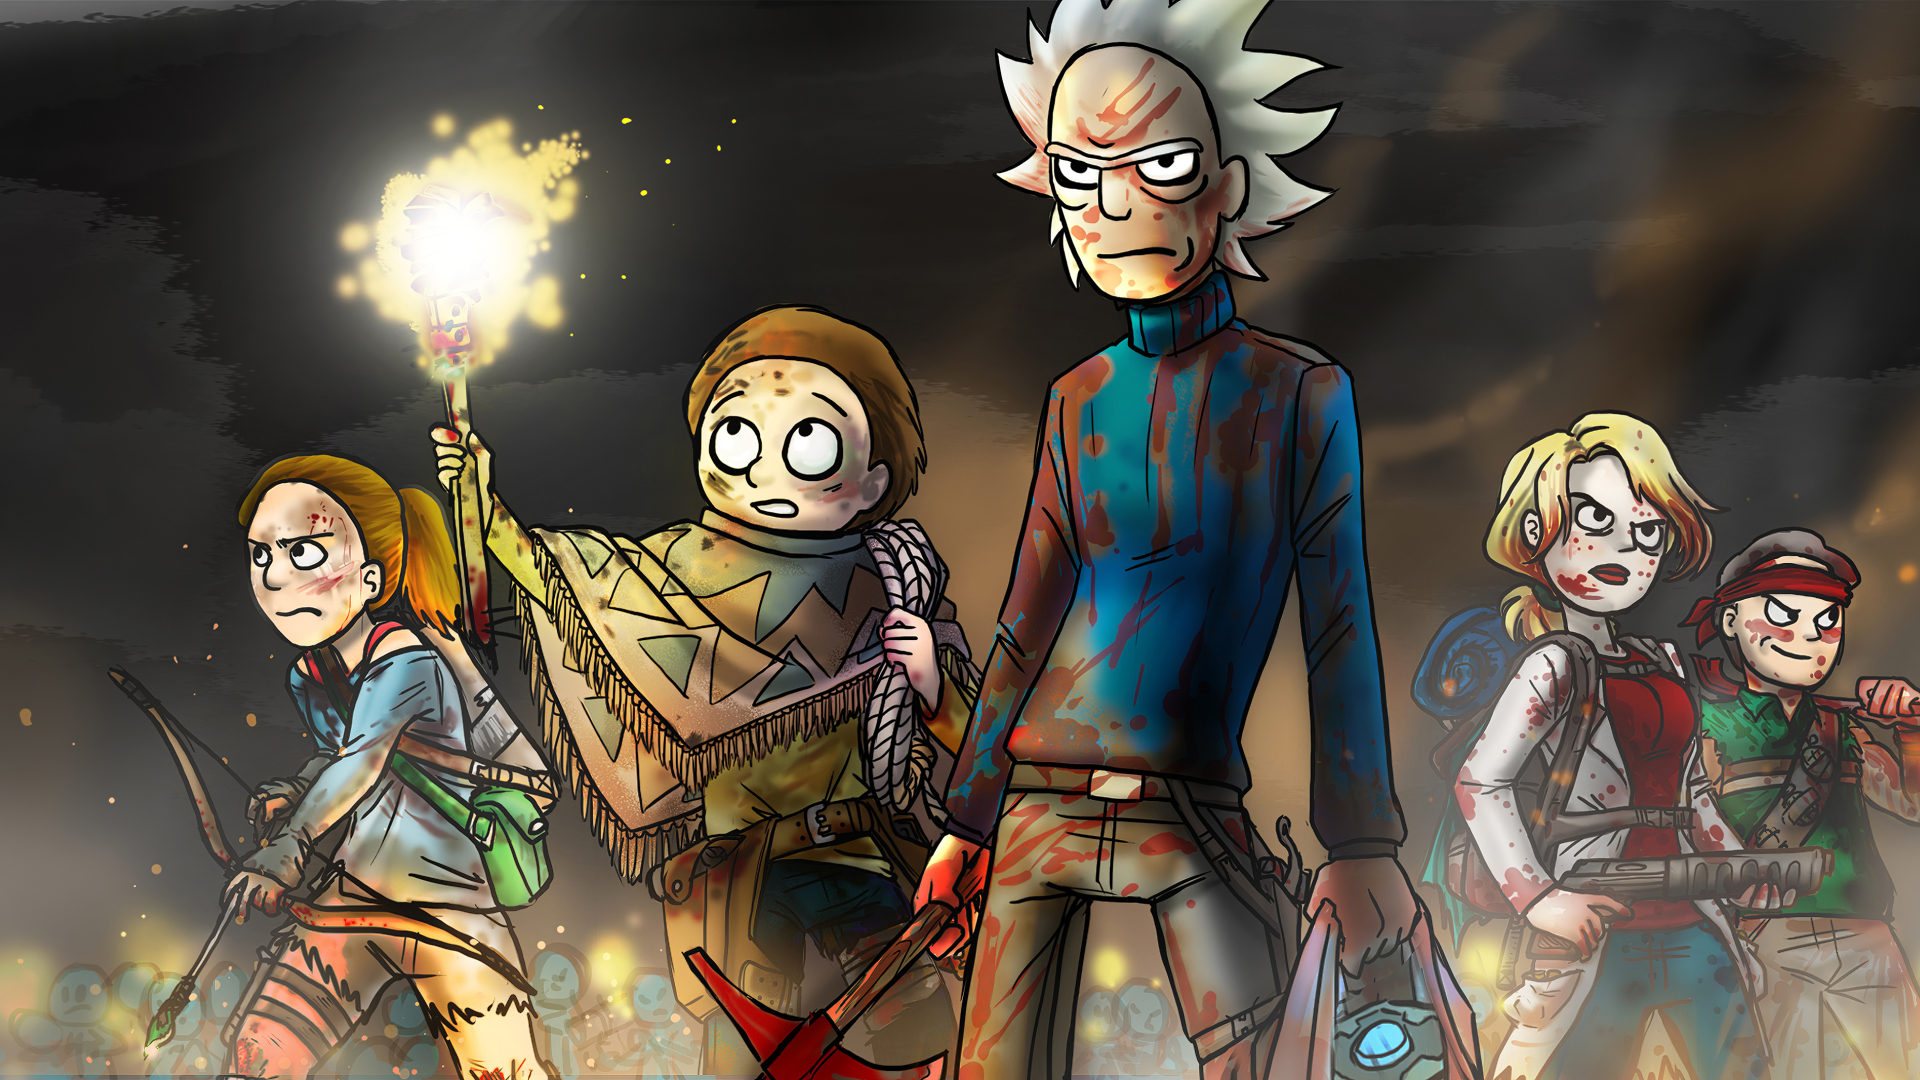 1920x1080 Rick And Morty 2019 Art 1080p Laptop Full Hd Wallpaper Hd Tv Series 4k Wallpapers Images Photos And Background